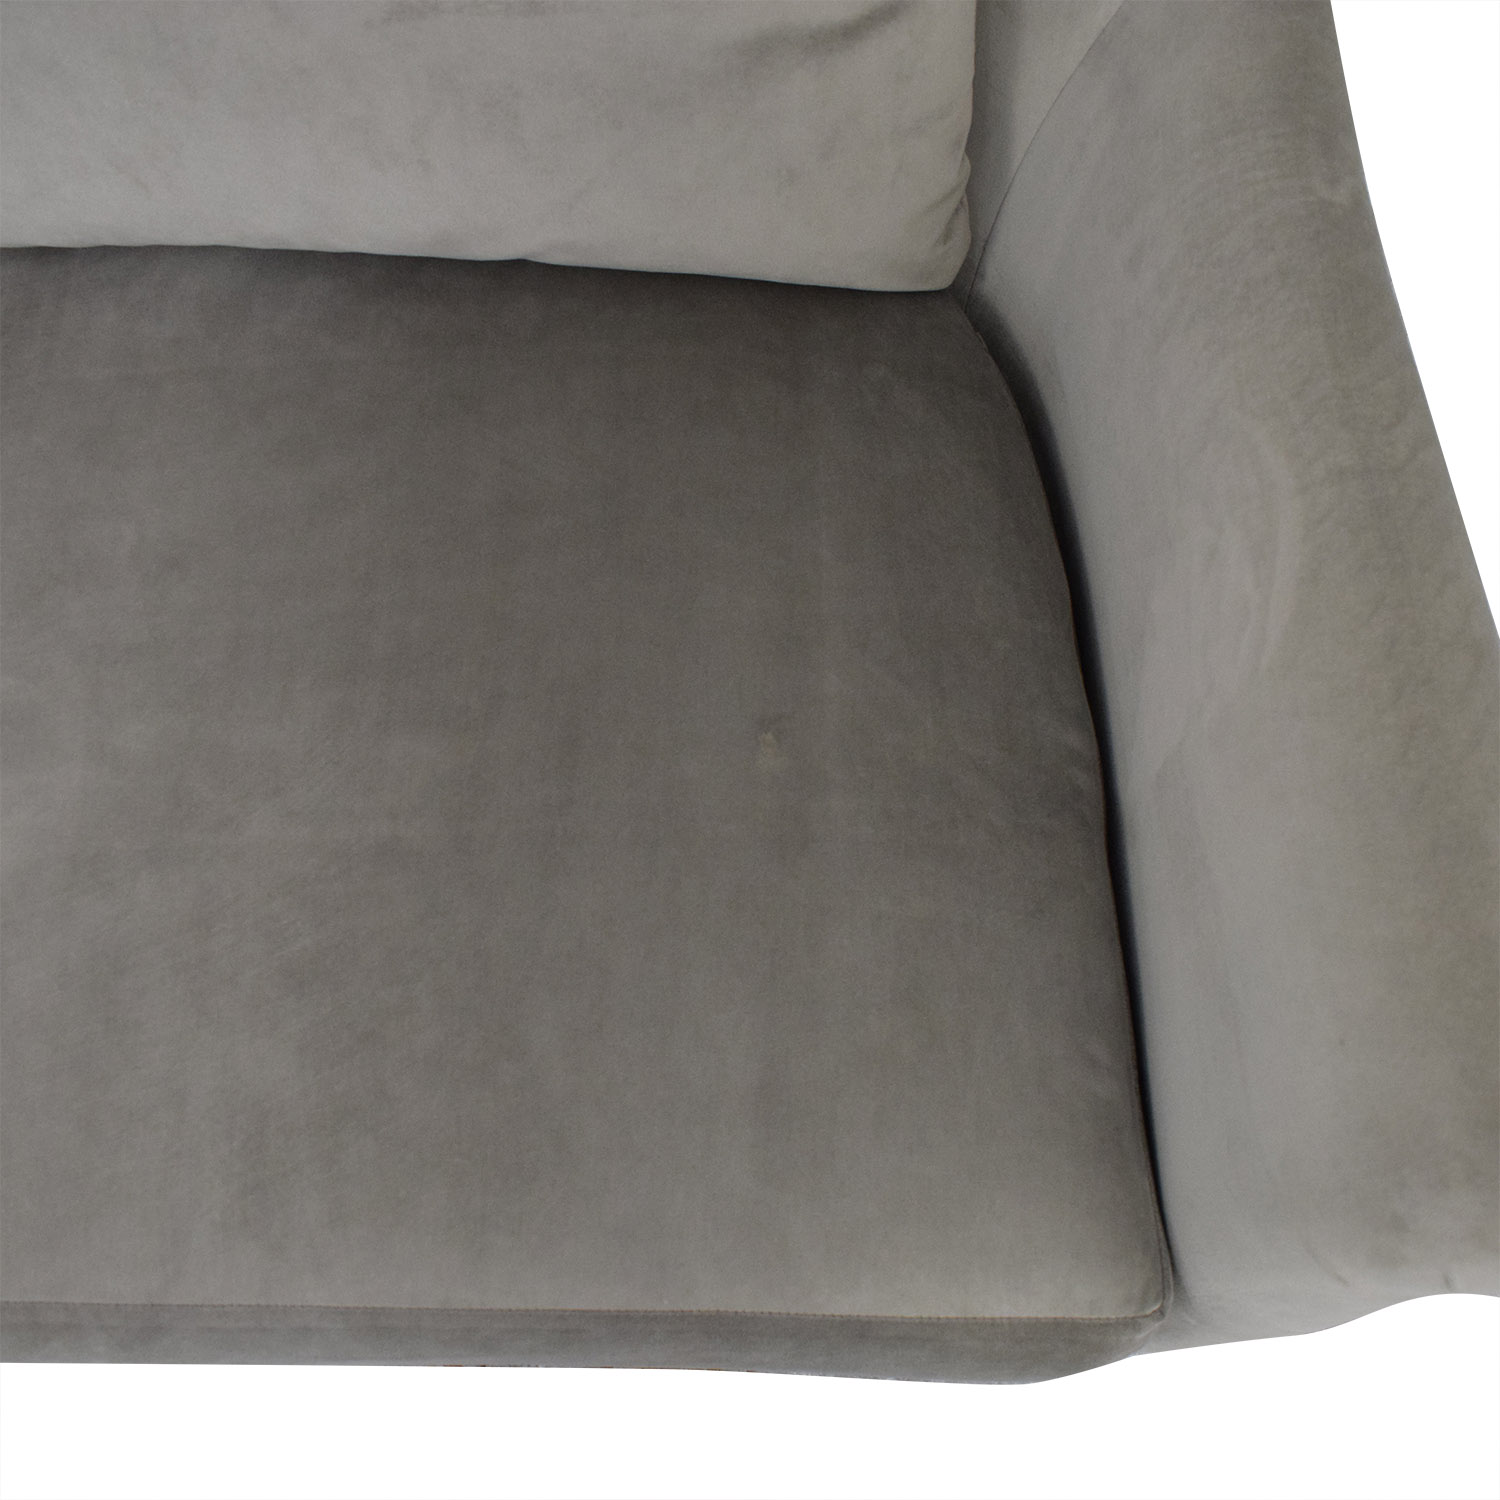 Safavieh Safavieh Roll Arm Velvet Sofa price